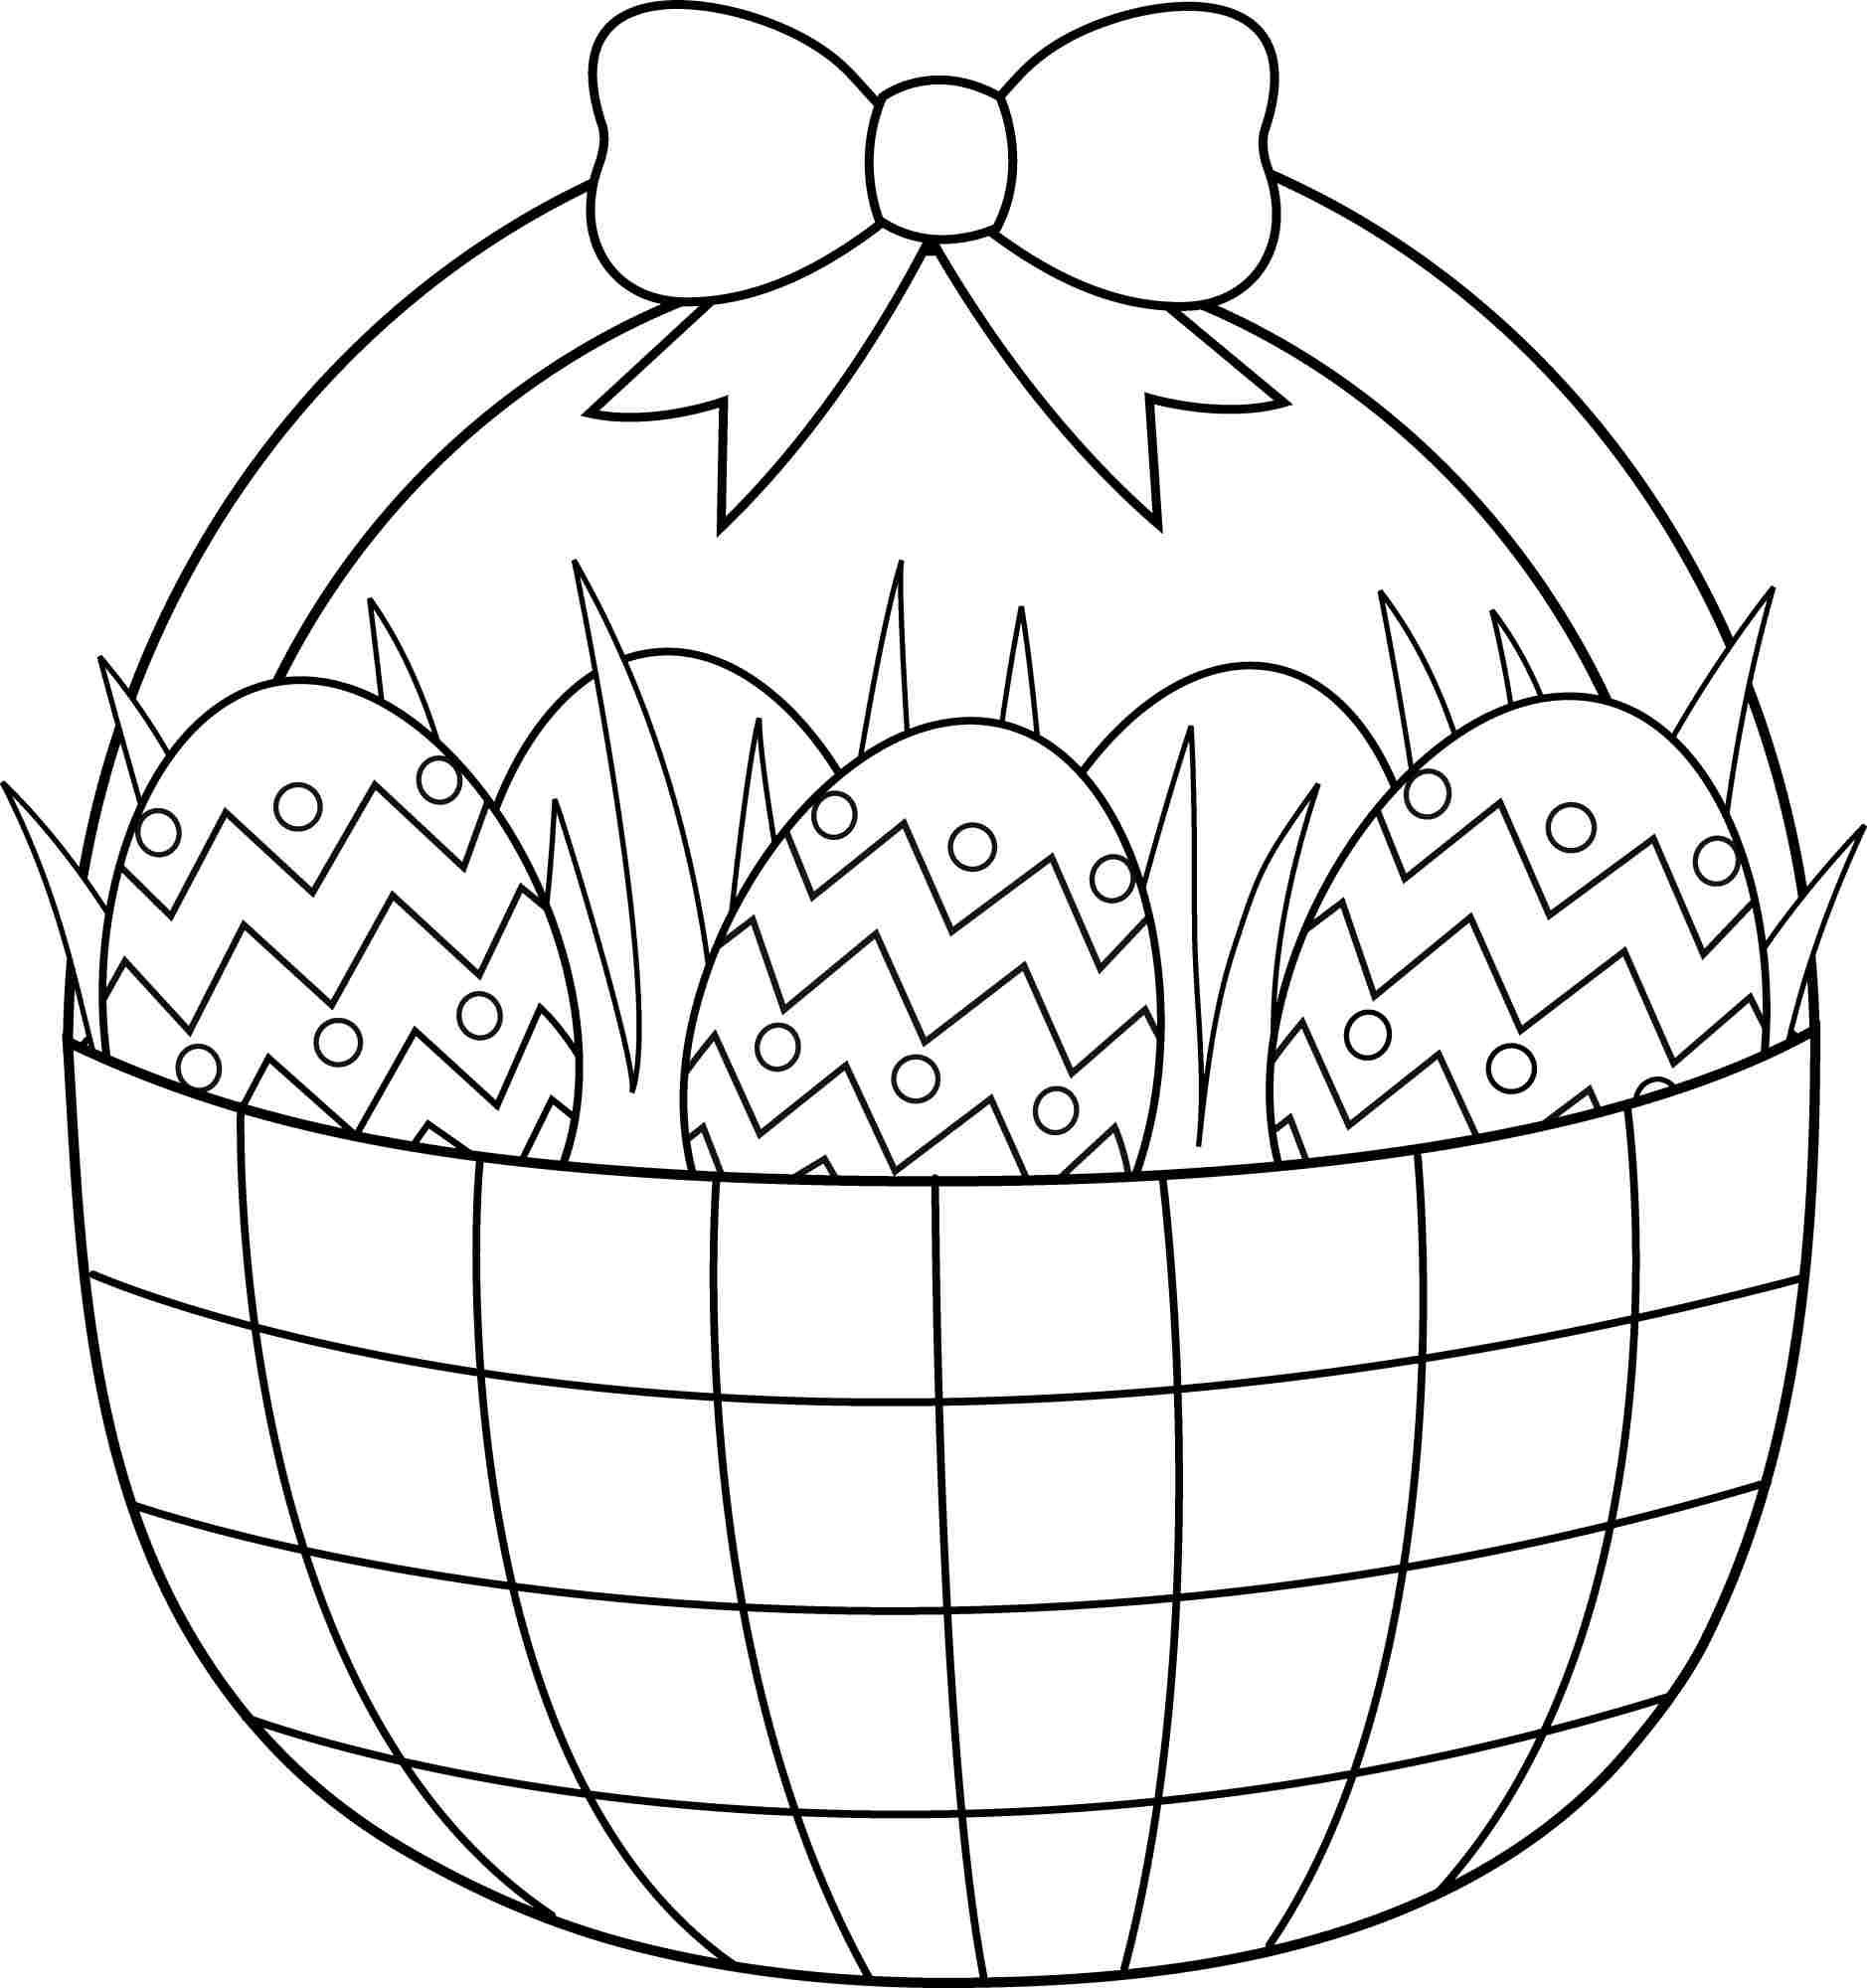 Easter basket coloring pages download and print for free | Easter ...